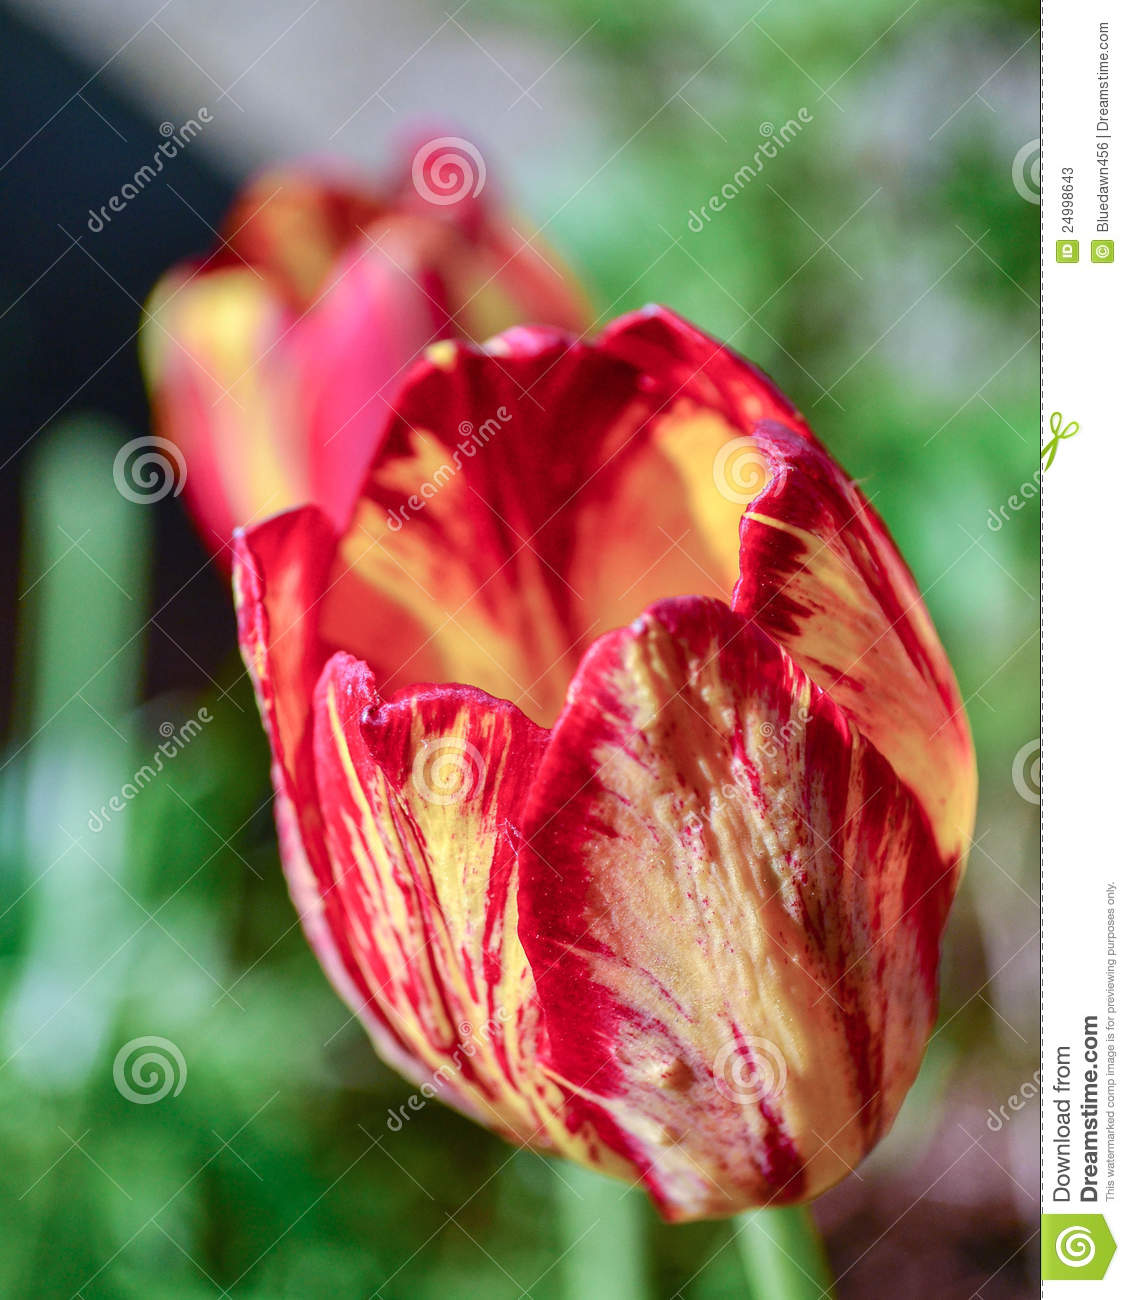 Red and yellow tulip perennial flowers stock image image of download red and yellow tulip perennial flowers stock image image of perennials isolated mightylinksfo